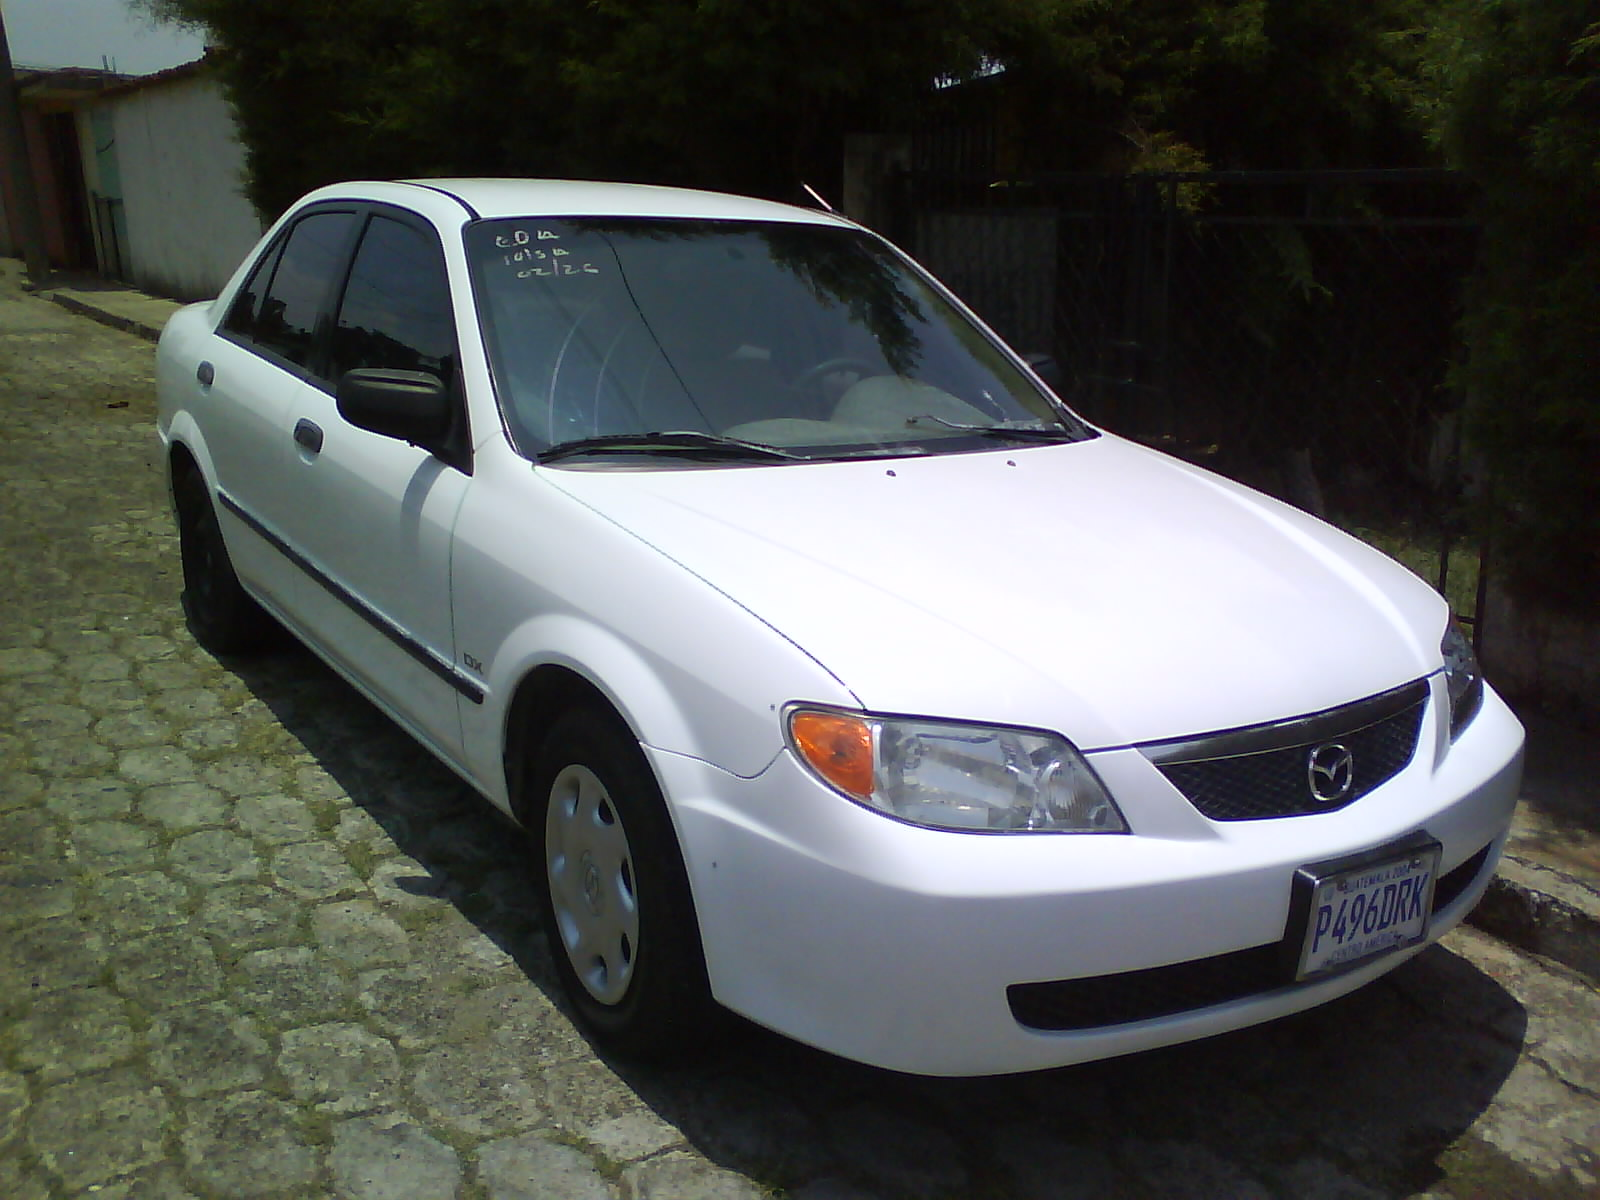 01 car wallpaper: mazda protege: one of mazda's best selling vehicles